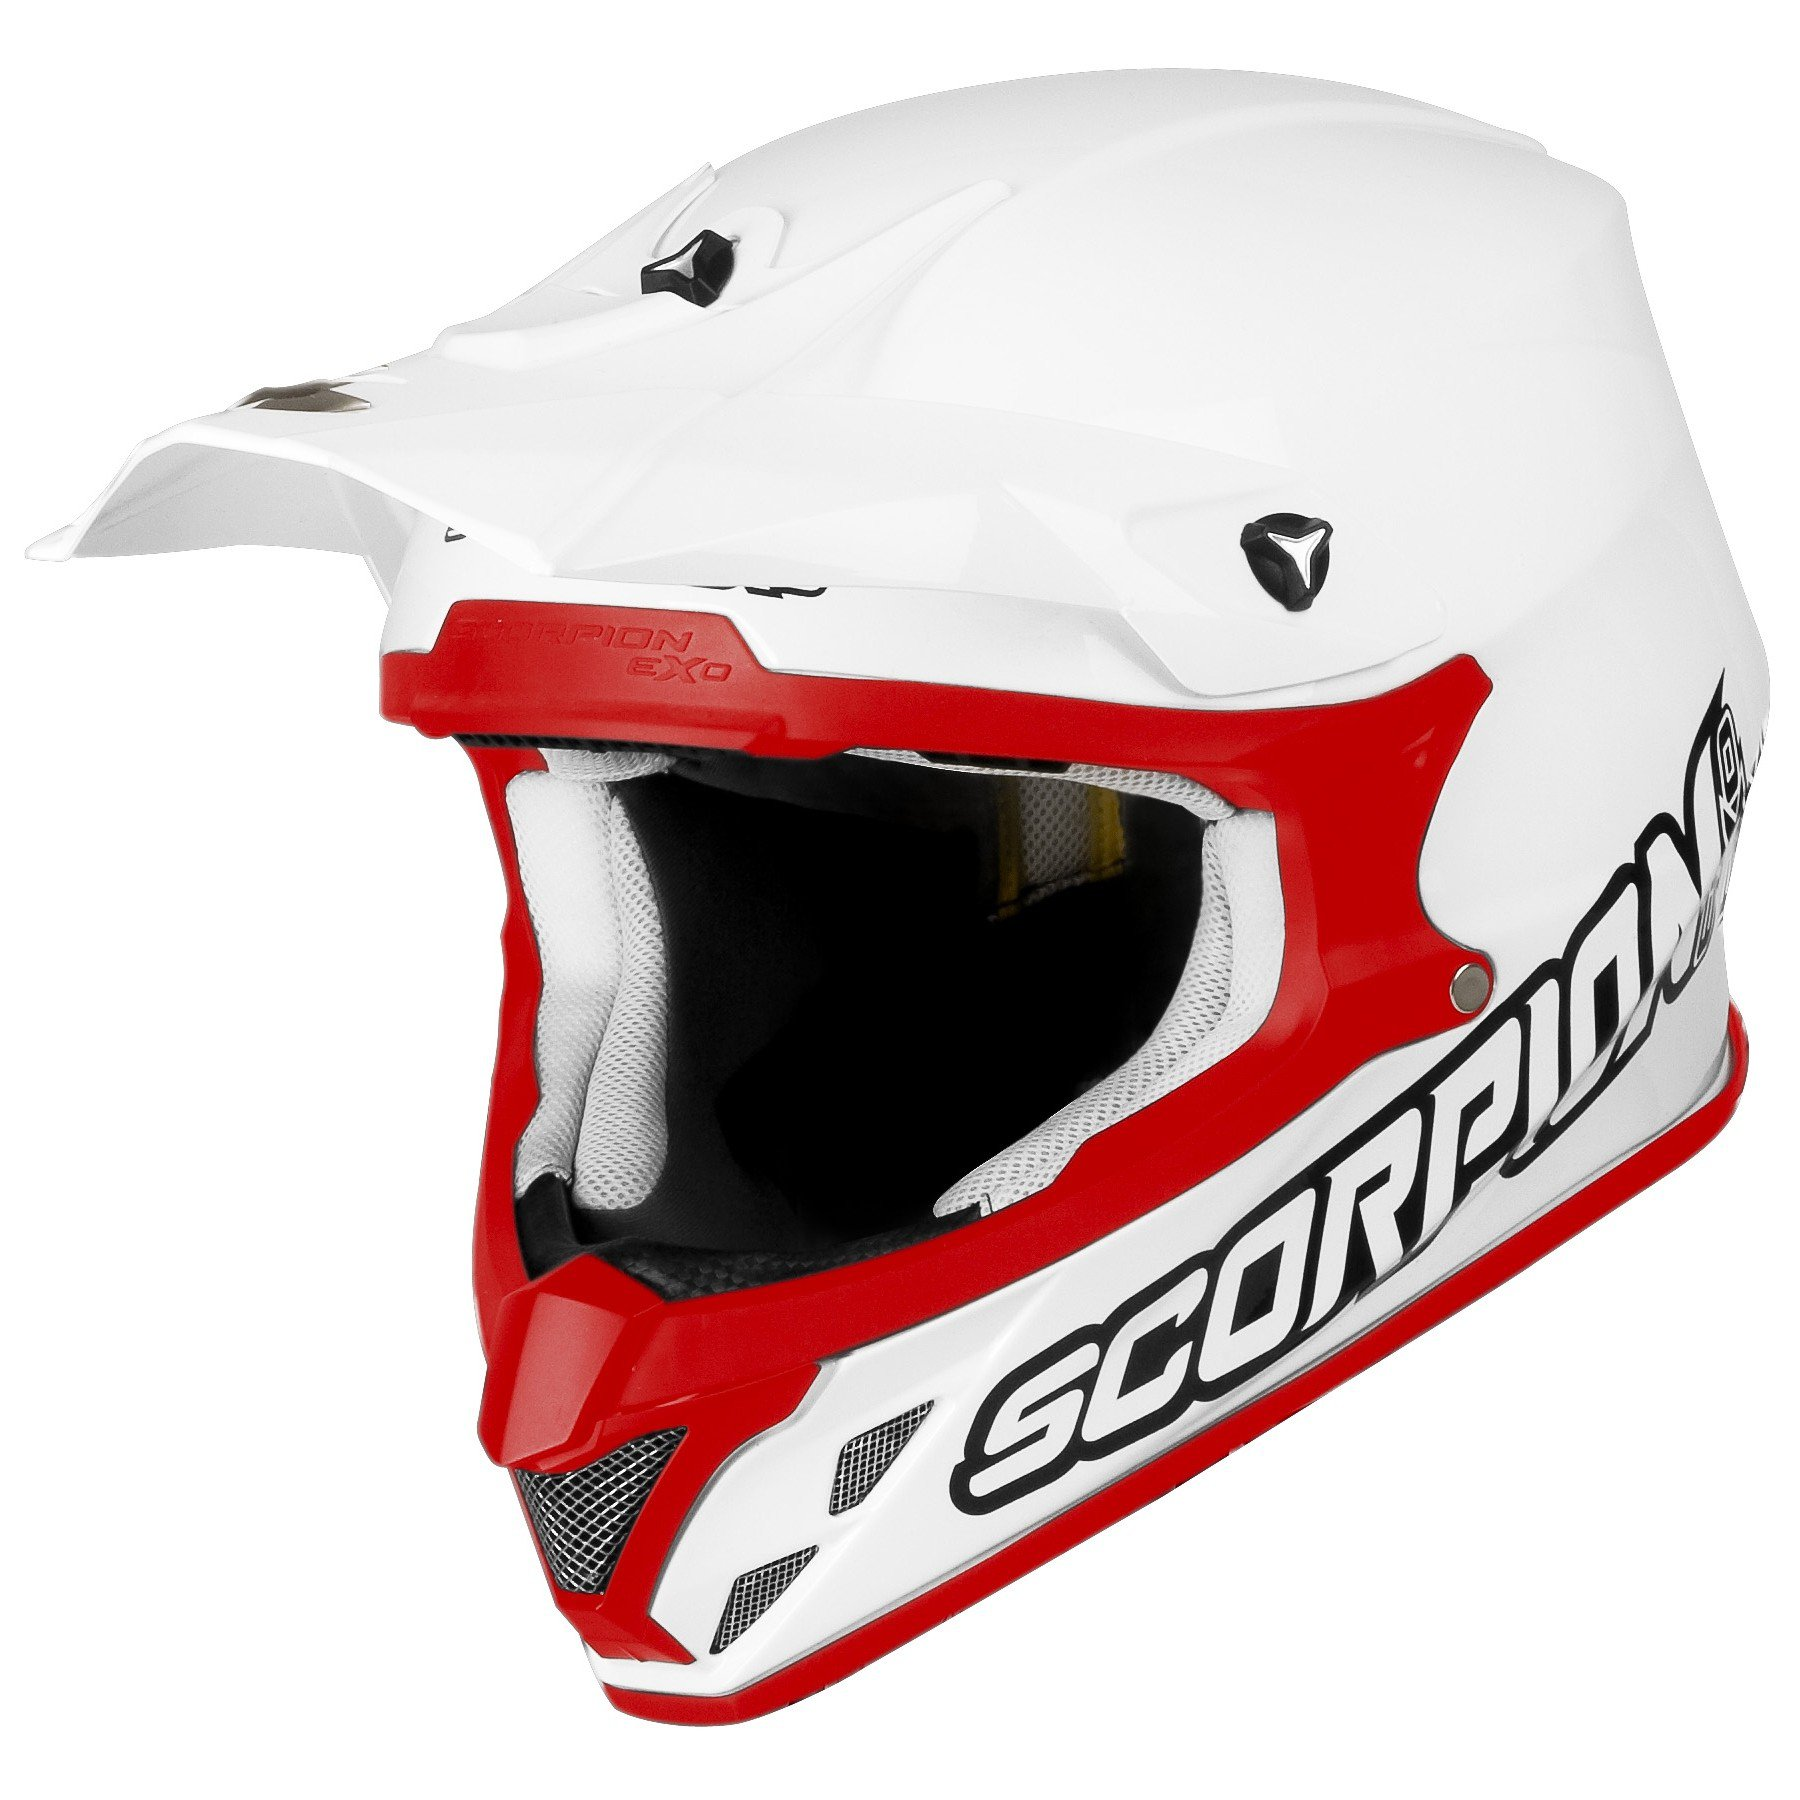 Scorpion VX 20 AIR Solid Solid VX-20 AIR White/Red S (55/56)